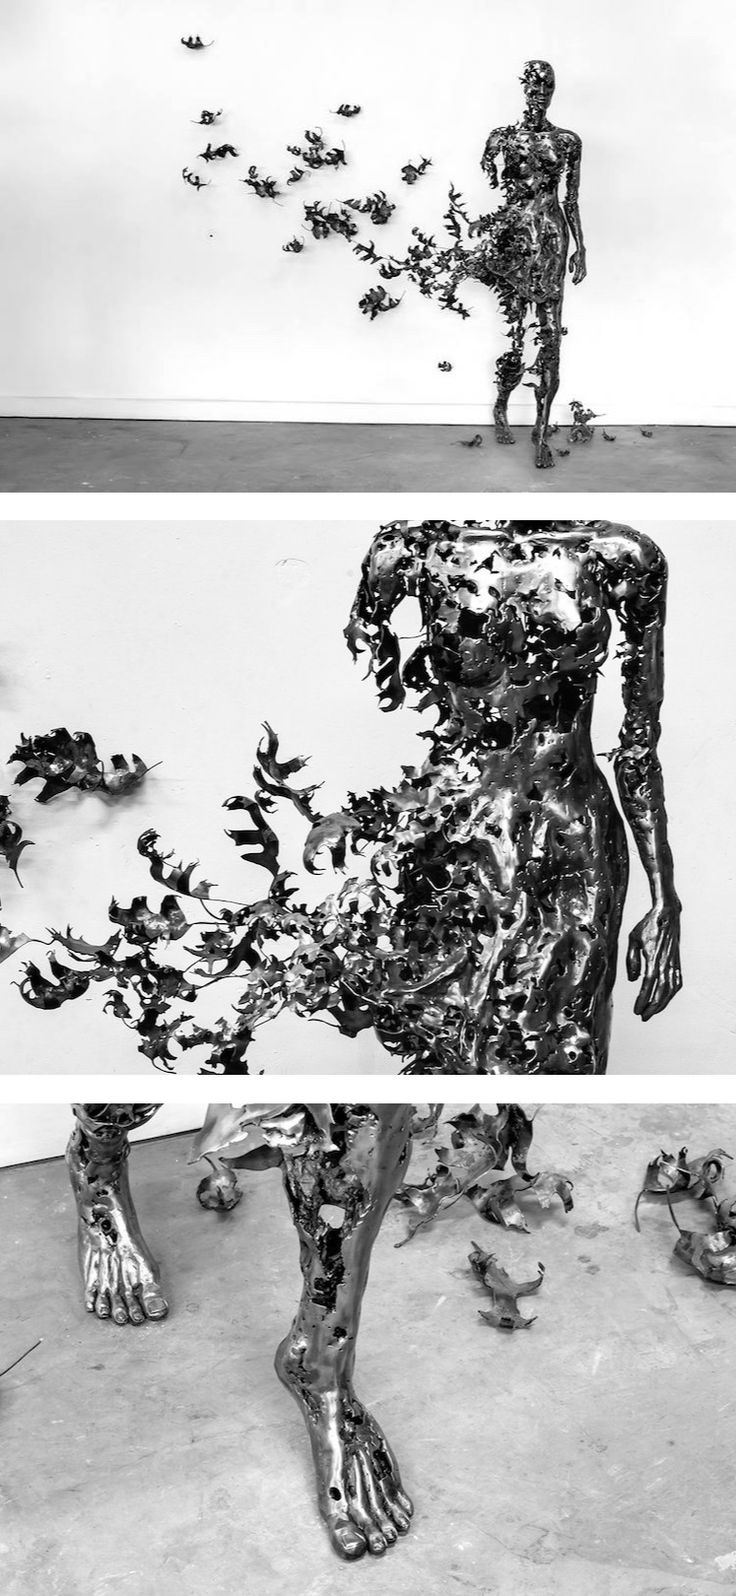 Artist Regardt van der Meulen continues to explore and exhibit the inherent fragility of the human body through steel sculptures in a series titled Deconstructed.